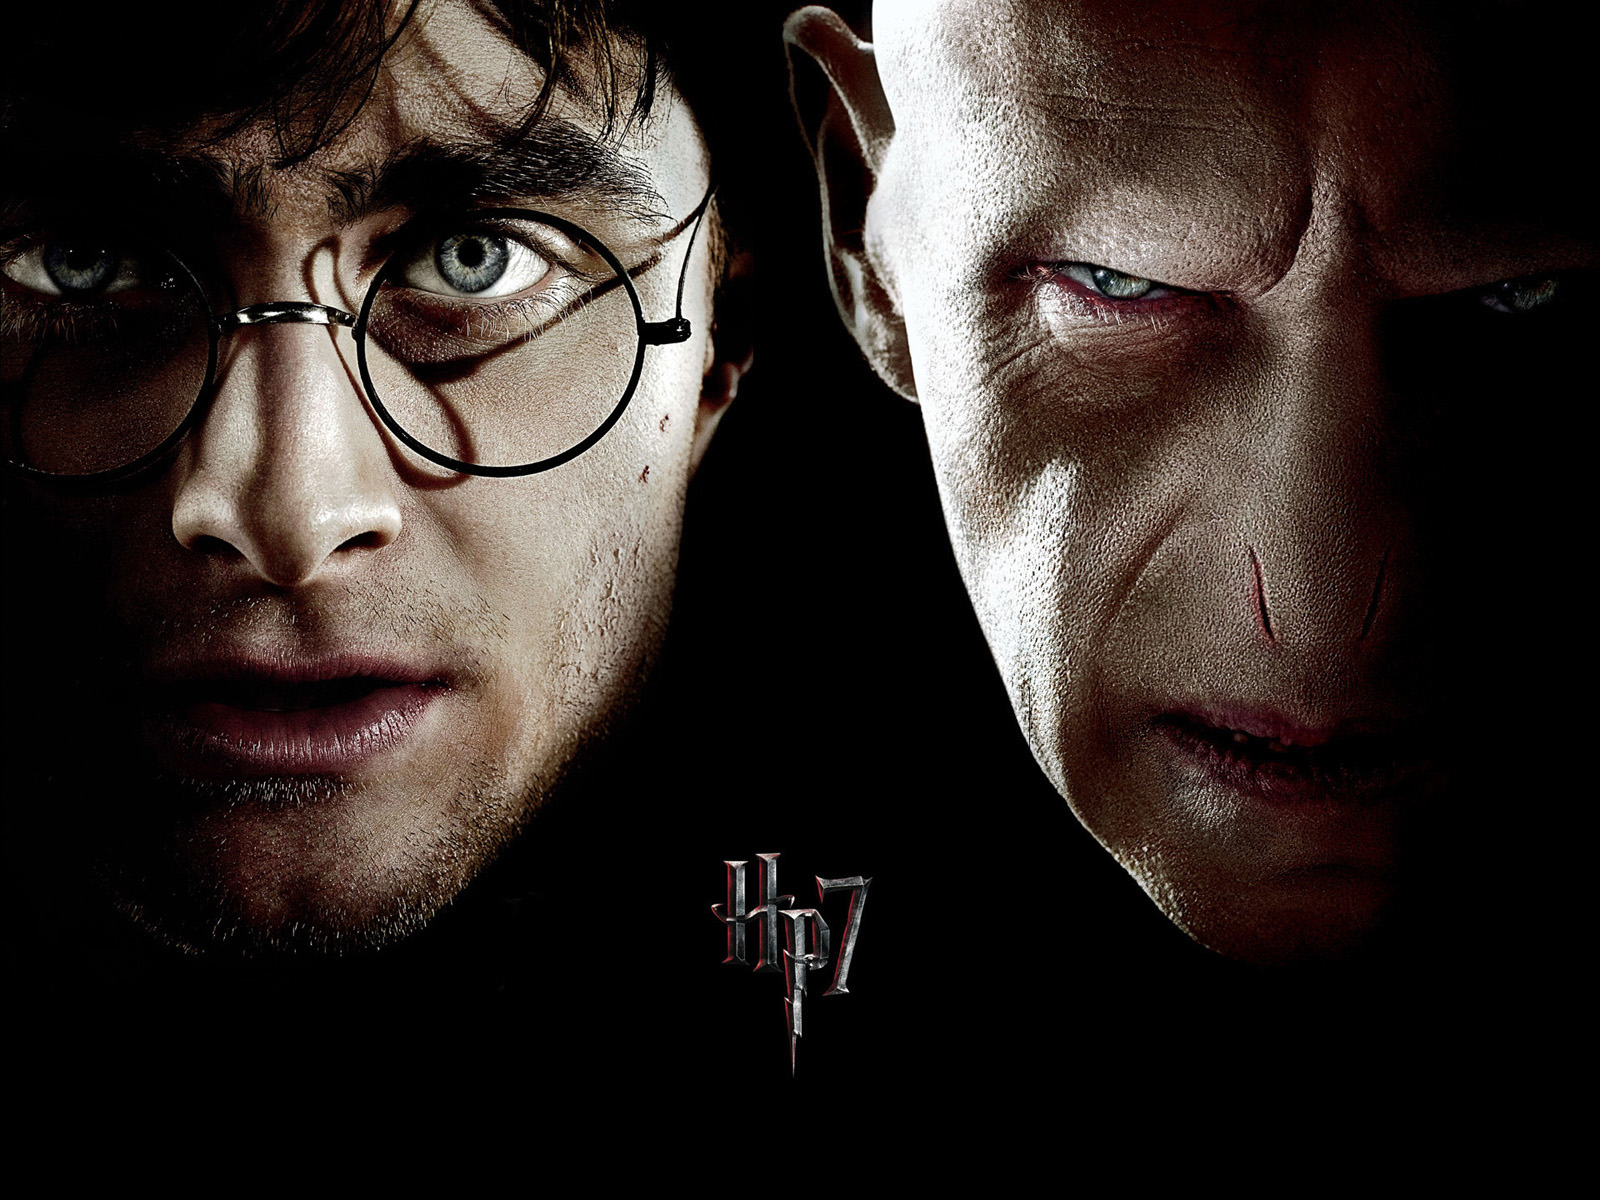 http://1.bp.blogspot.com/-5qABjW3TIPc/TiIm0Tsl-RI/AAAAAAAAABs/57Ng7EWrRCE/s1600/05-The-best-top-desktop-wallpapers-double-harry-potter-voldemort-hp7-wallpaper.jpg